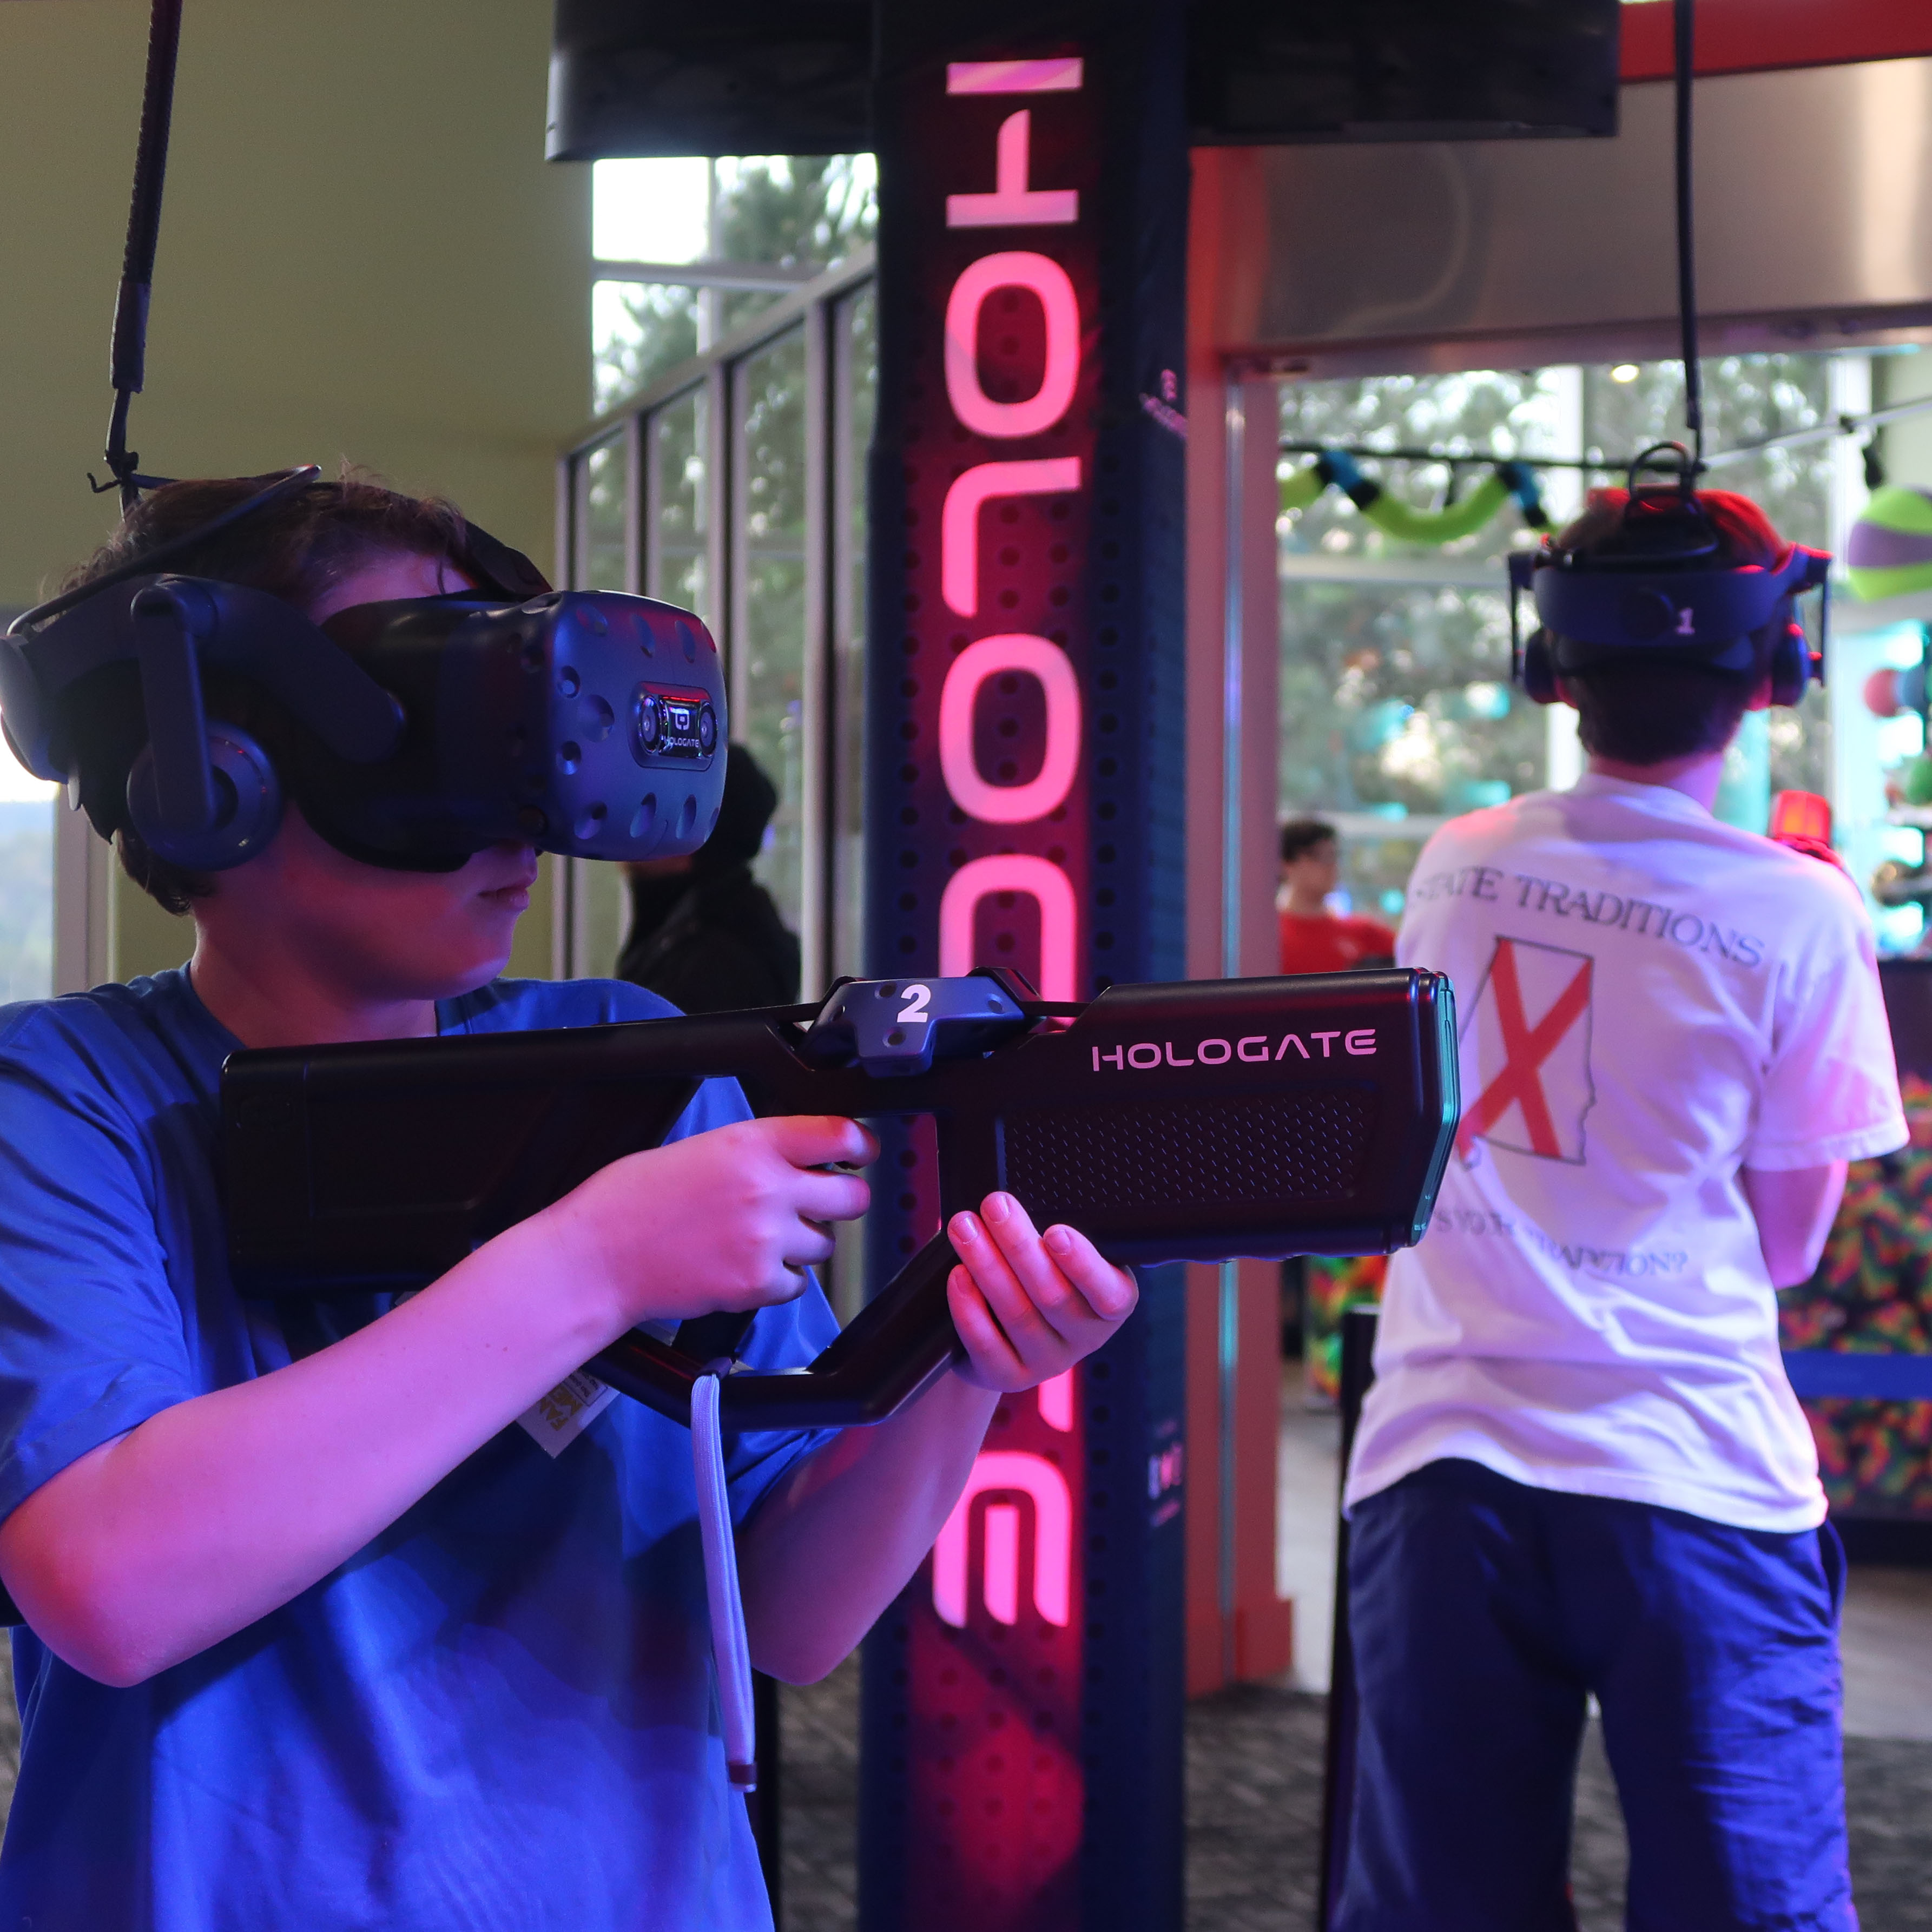 Kids Playing Hologate VR